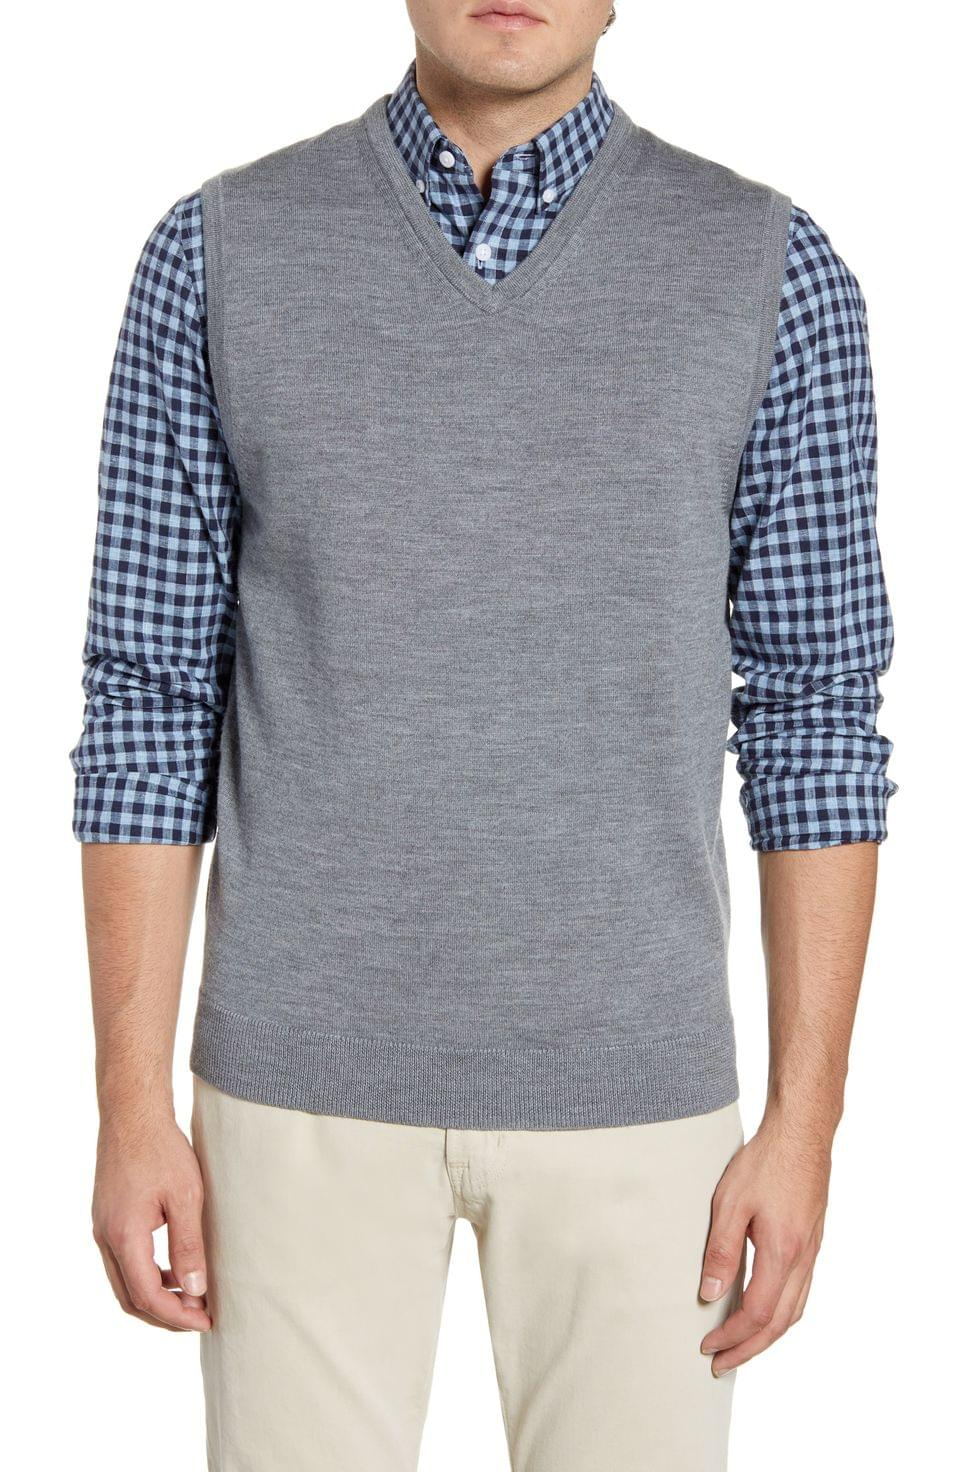 Men's Nordstrom Men's Shop Merino Wool Sweater Vest